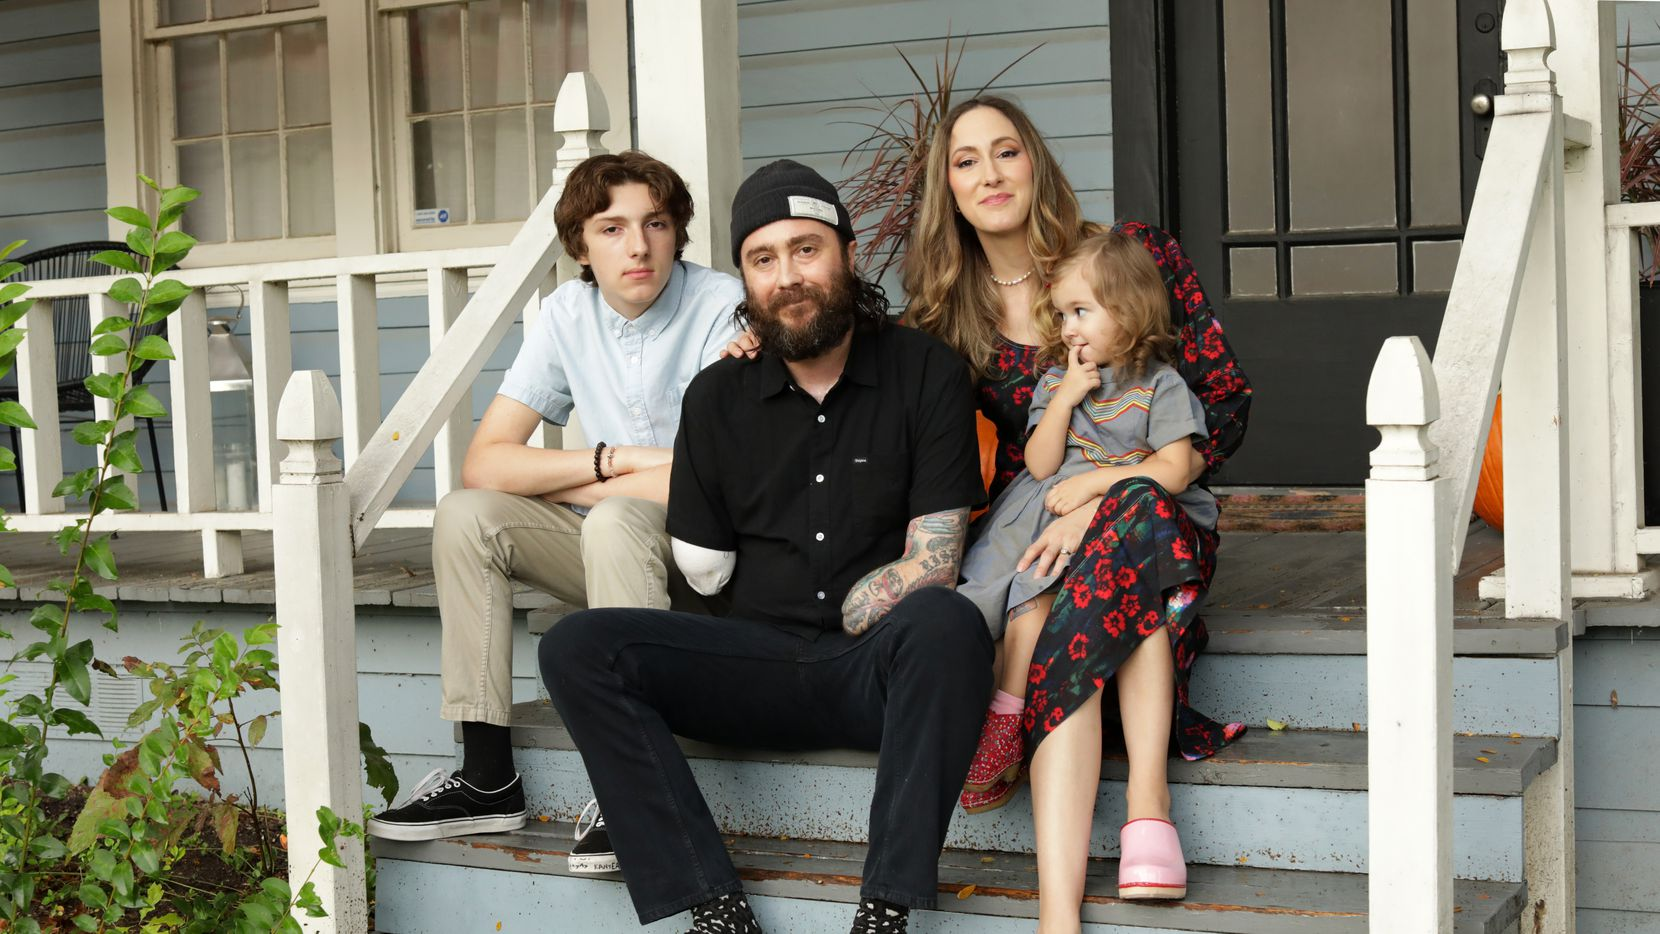 Jude Cooper, left, Jeff Saenz, Monica Cooper and Lola Saenz pose outside their Dallas home on Oct. 1.